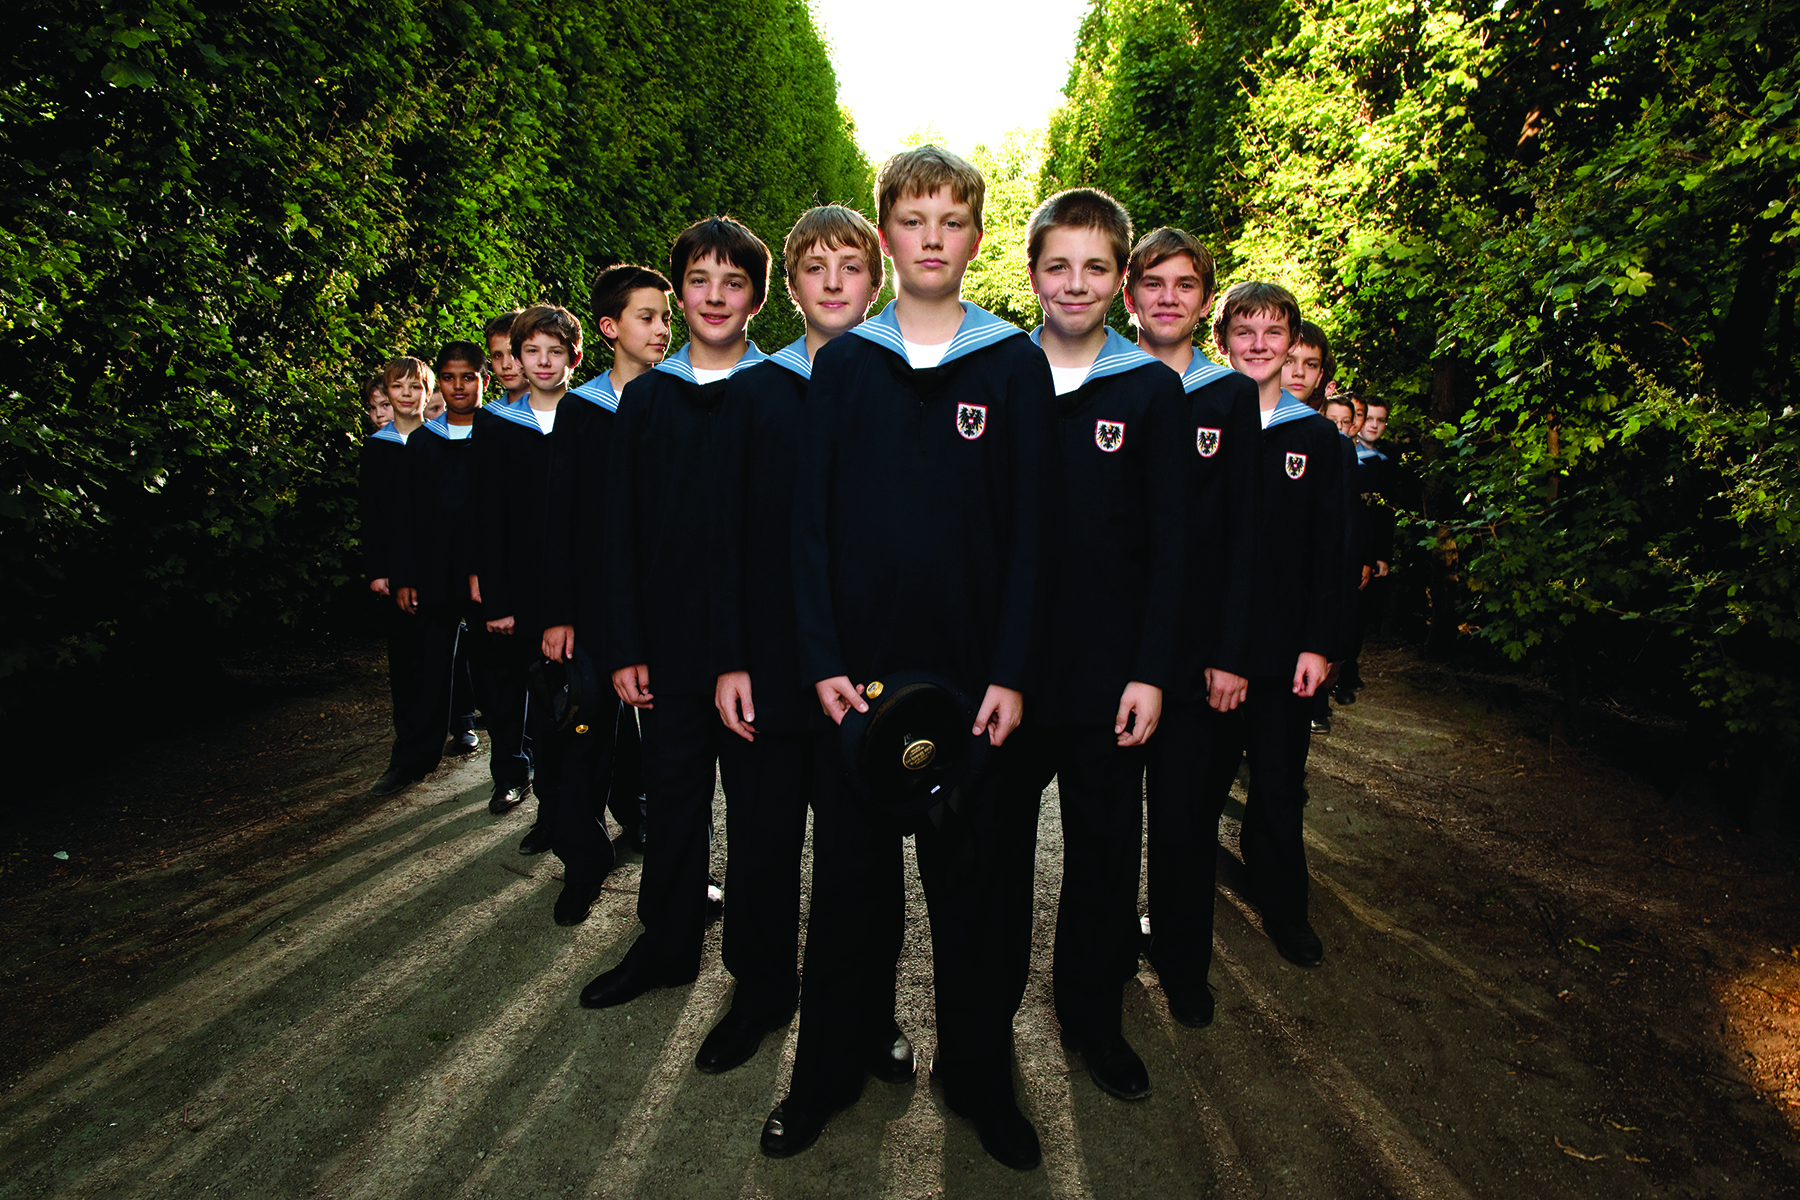 Members of the Vienna Boys Choir stand in a triangle formation for a photo